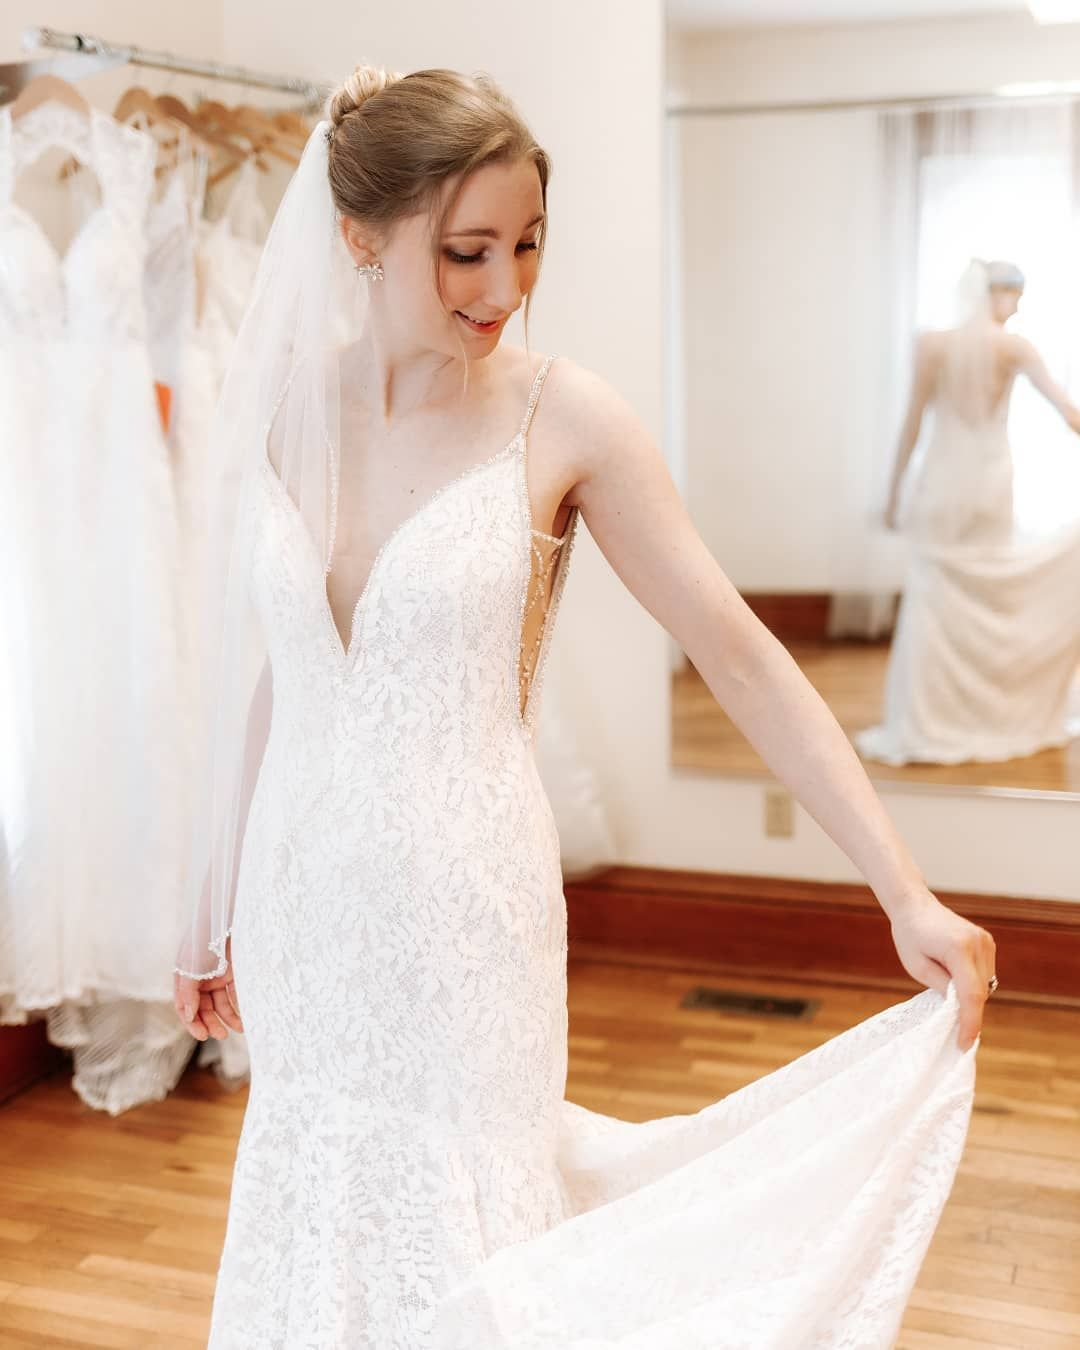 Wedding Shoppe Inc Instagram In 2020 Wedding Dresses Lace Long Sleeve Wedding Dress Lace Fit And Flare Wedding Dress